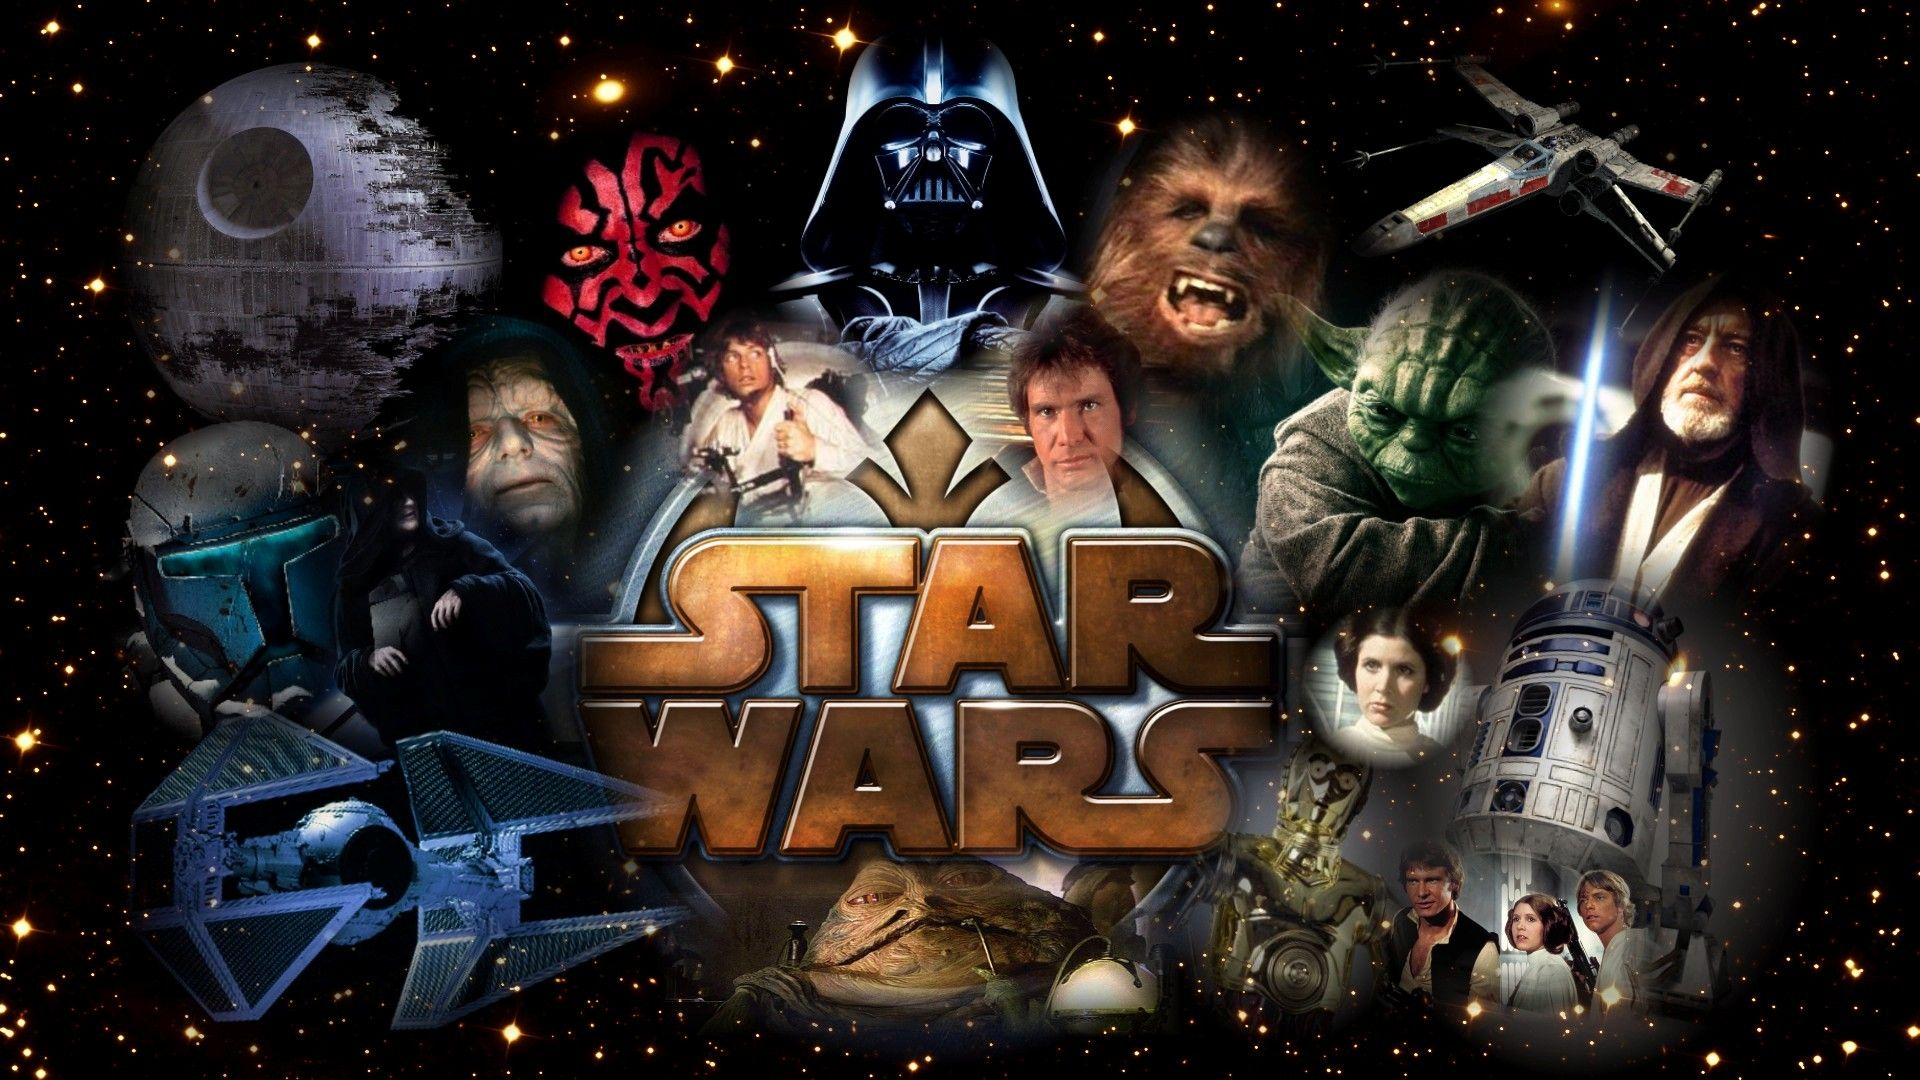 Star Wars Characters Wallpapers Top Free Star Wars Characters